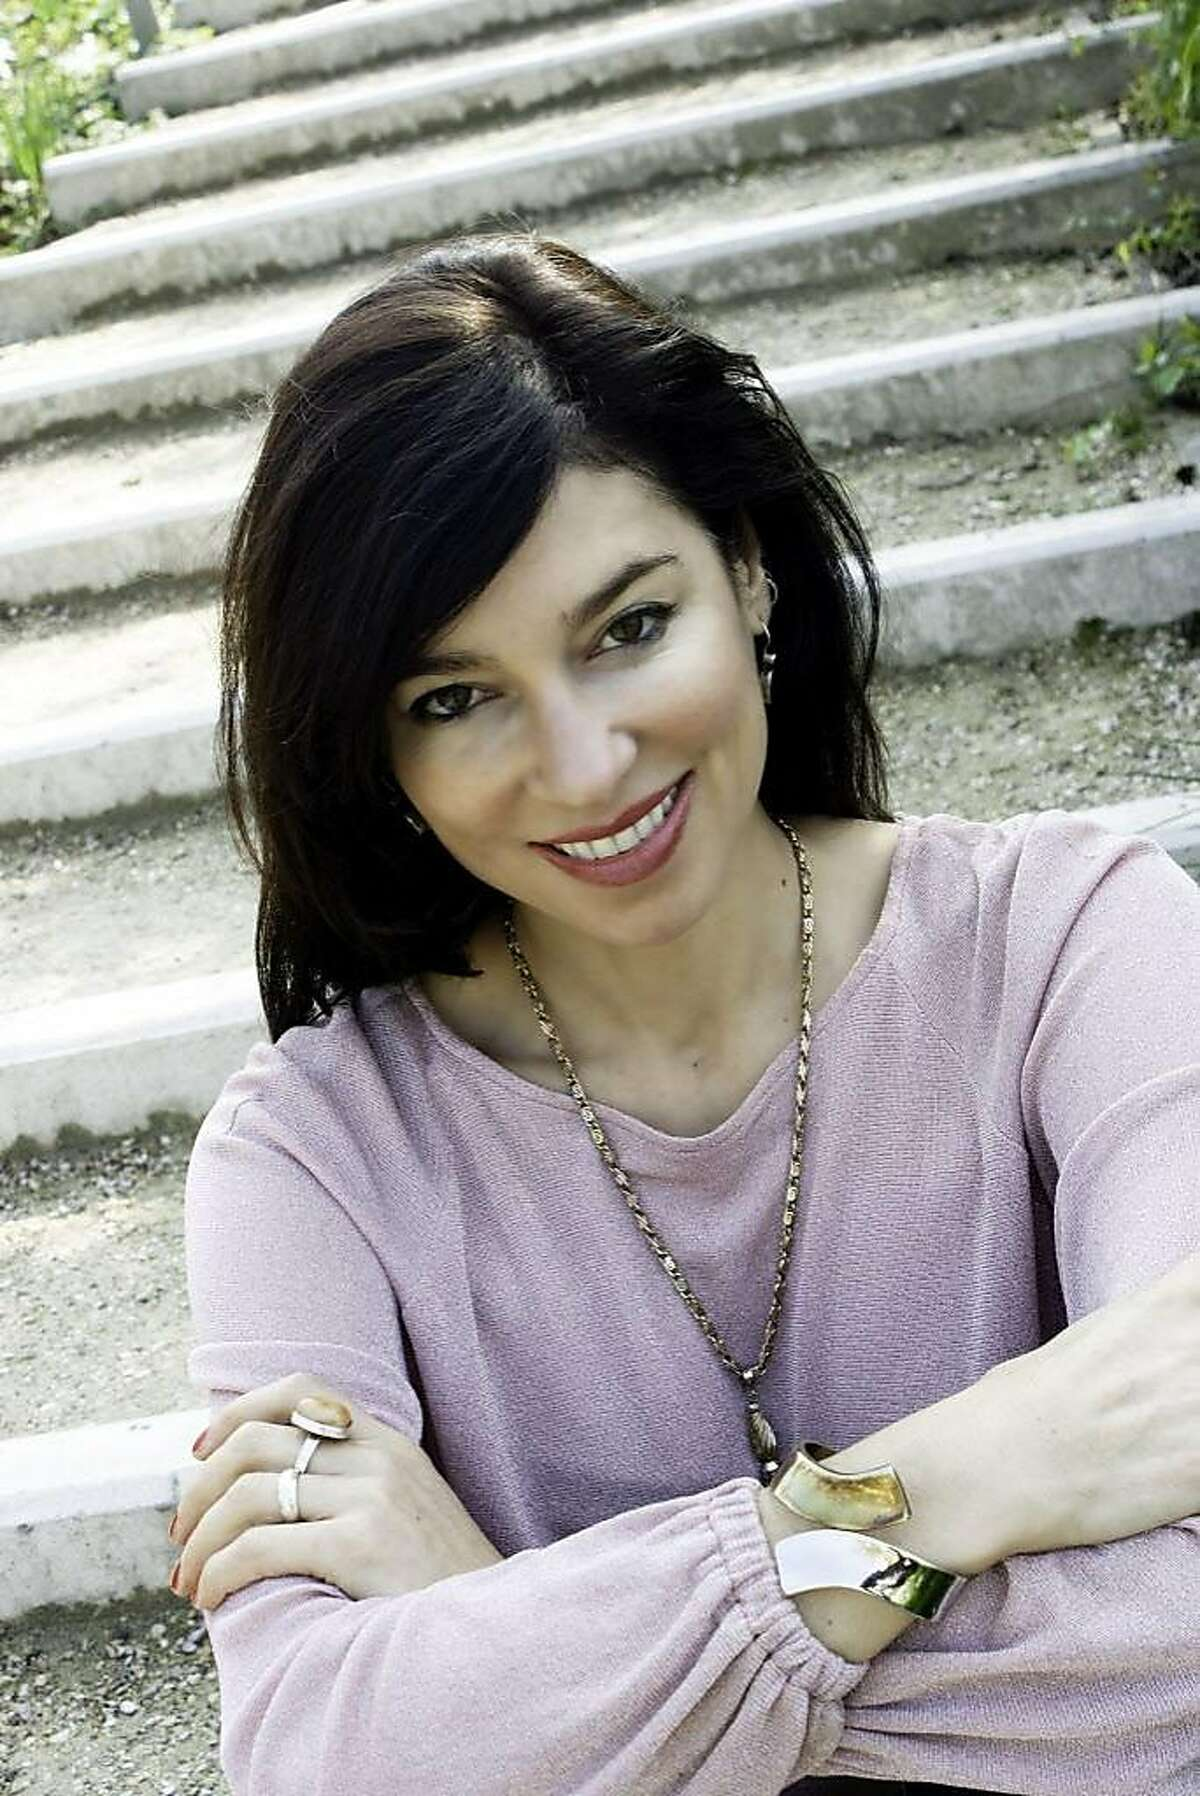 Aurelia d'Andrea is the travel and beauty editor at VegNews magazine